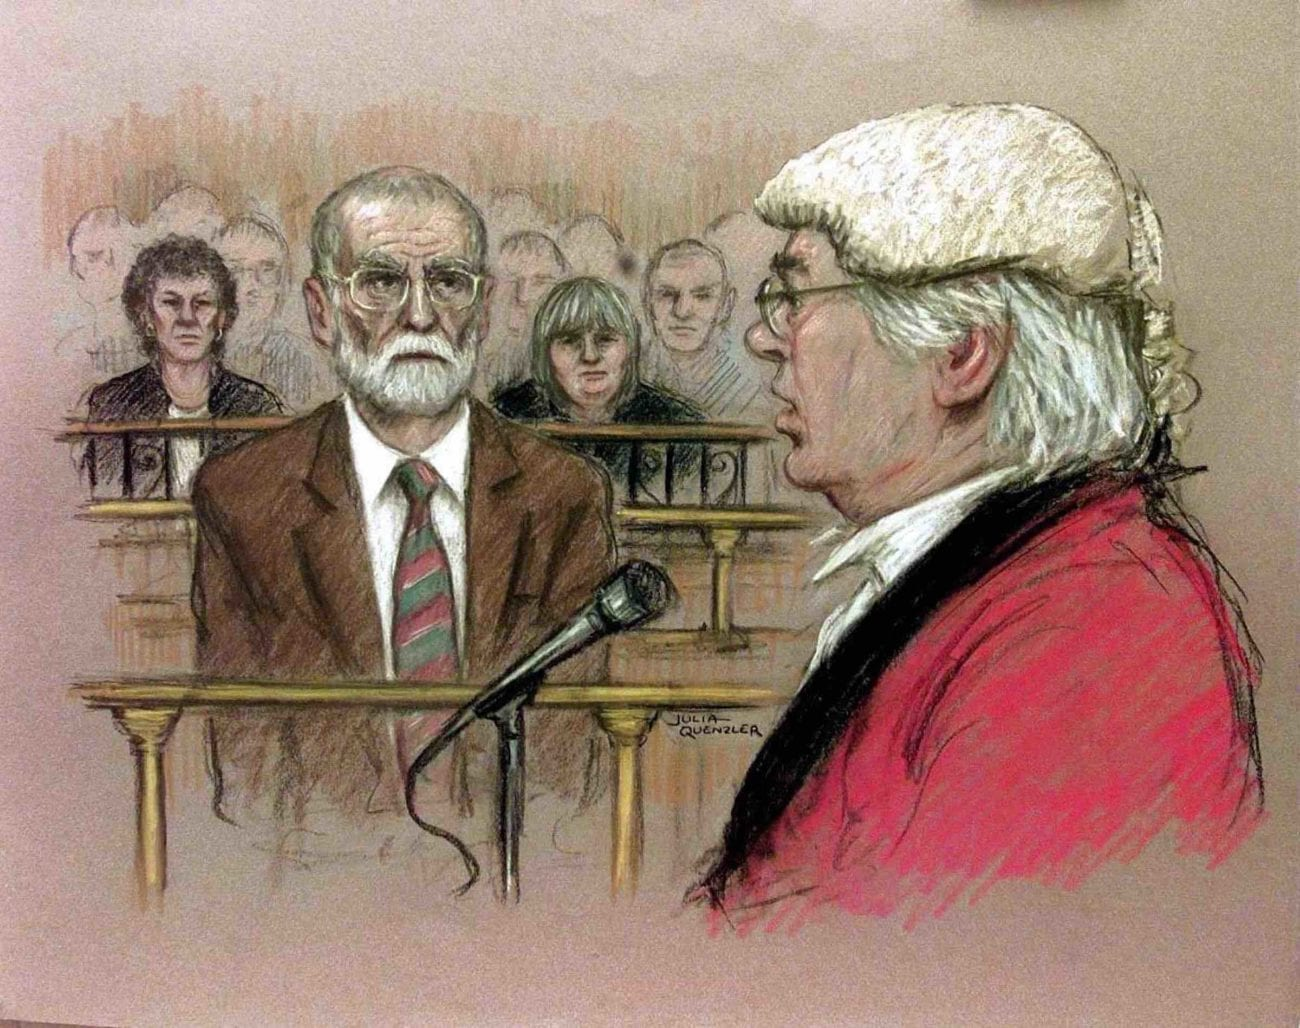 Former doctor and serial killer Harold Shipman murdered at least 215 patients. Here's everything we know about the deadly doctor.